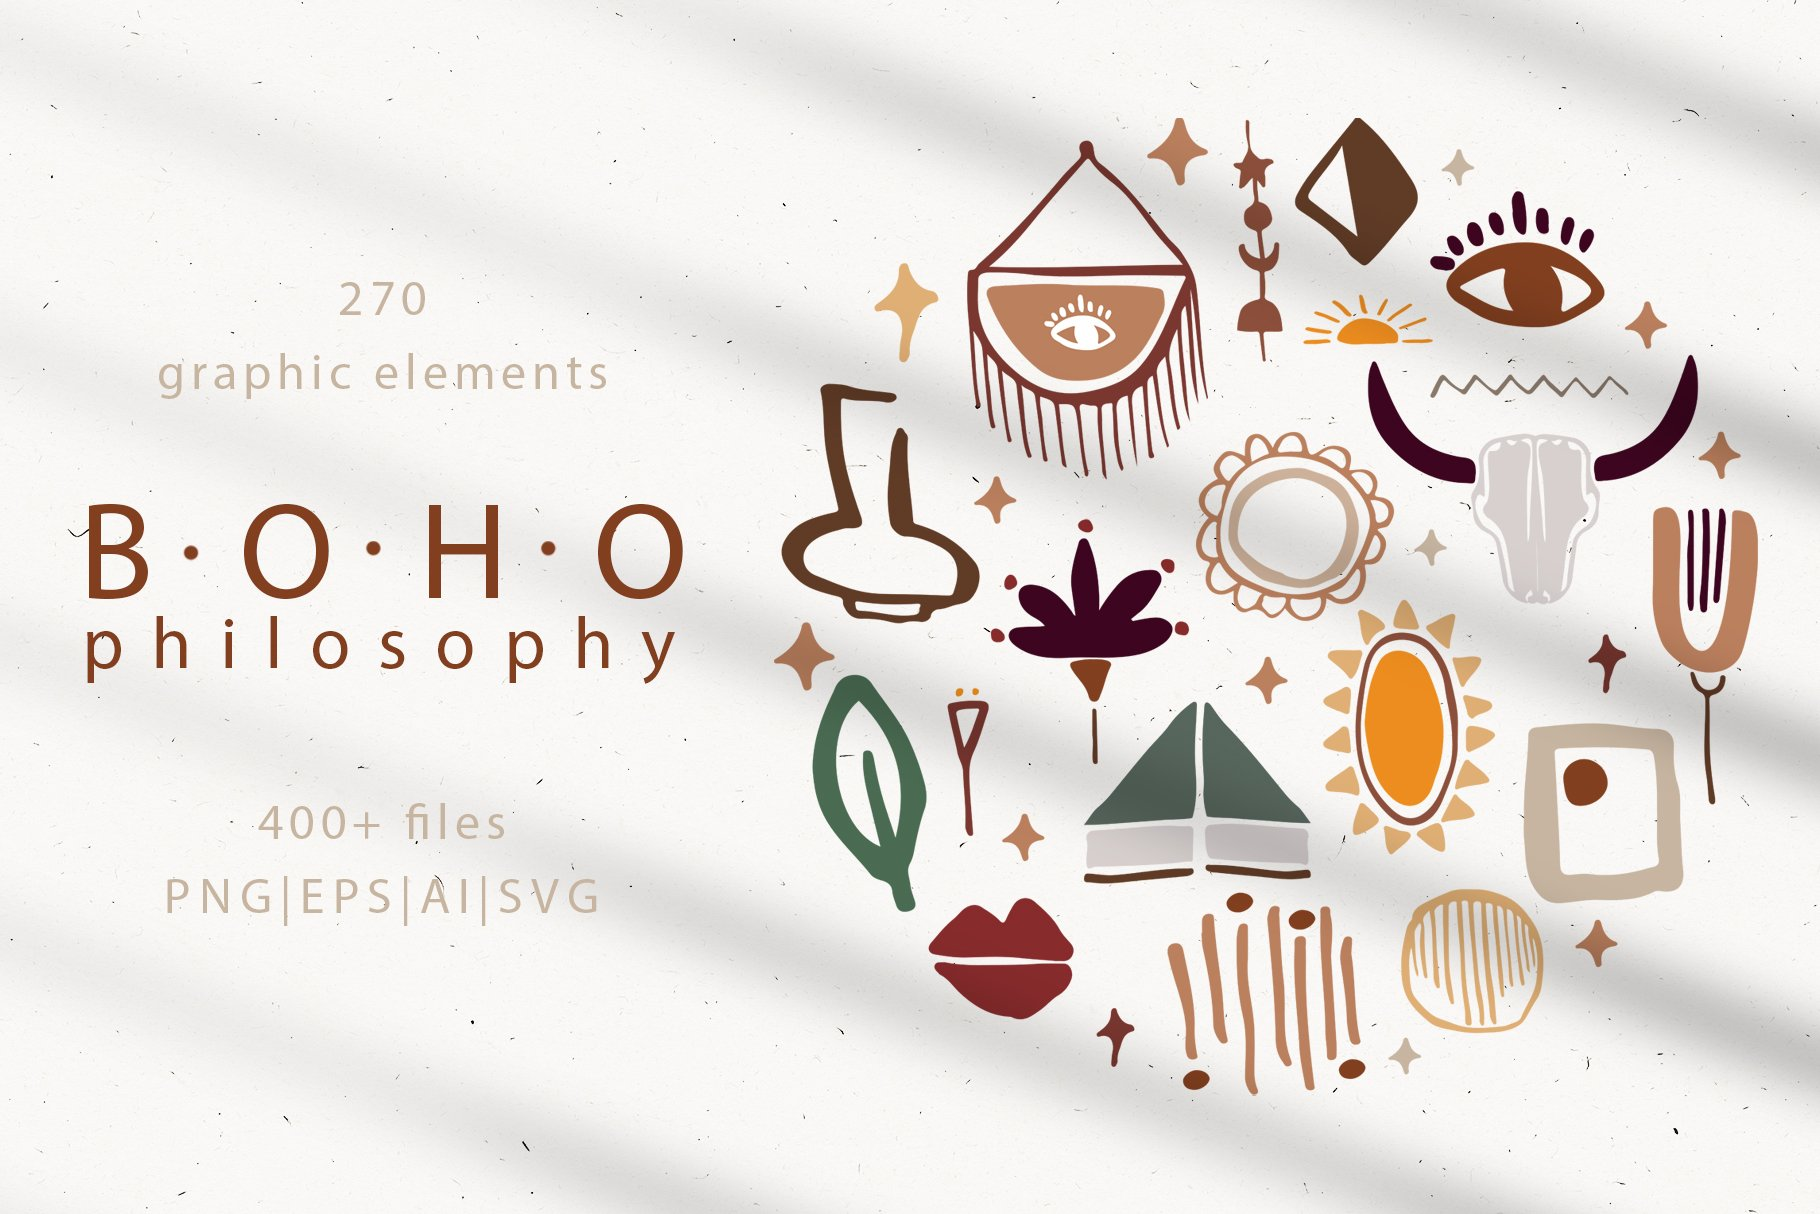 Boho philosophy collection